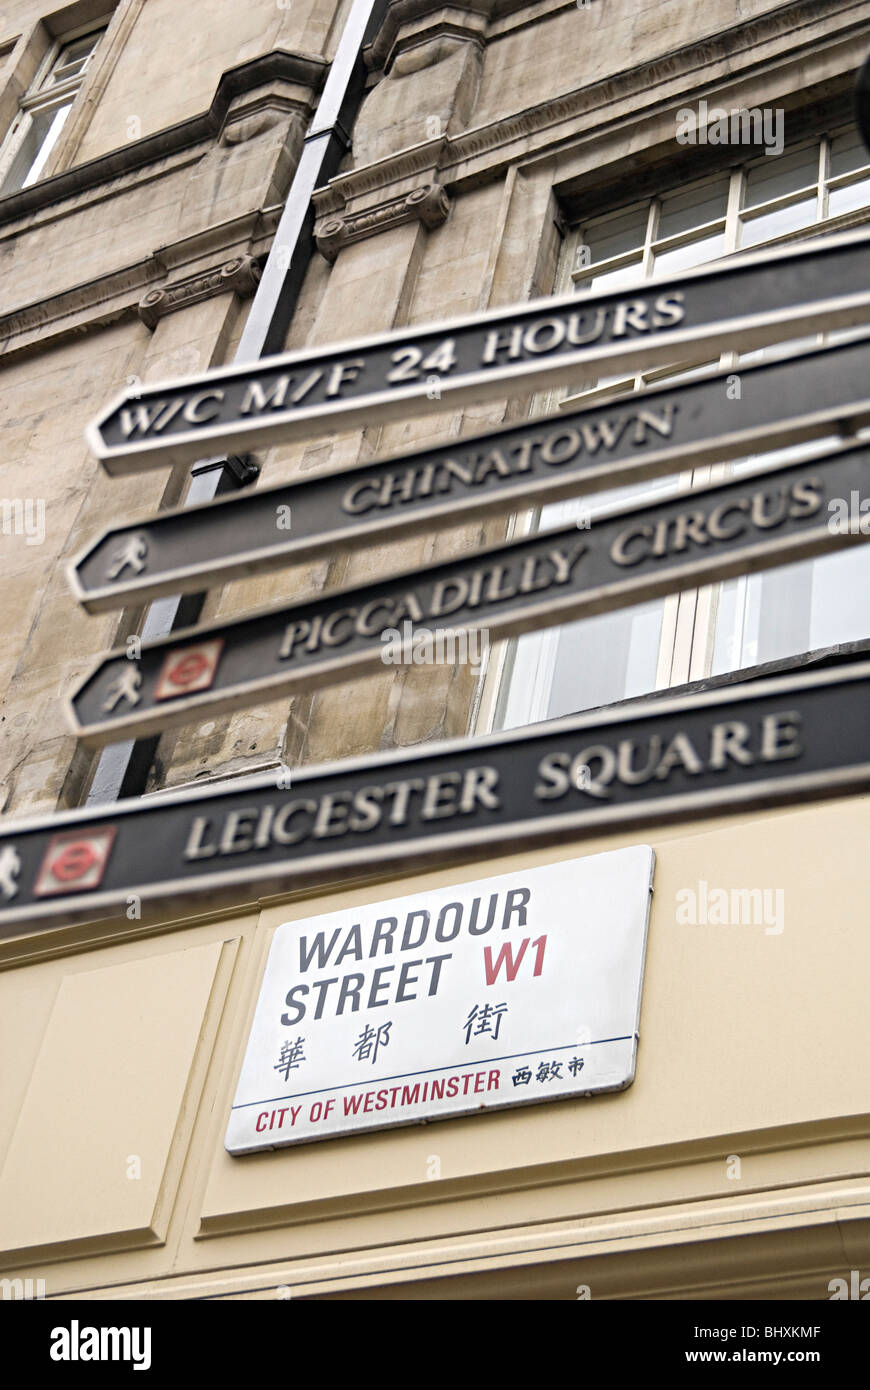 sign in london on wardour street with china town Leicester square, Piccadilly square and toilet directions - Stock Image